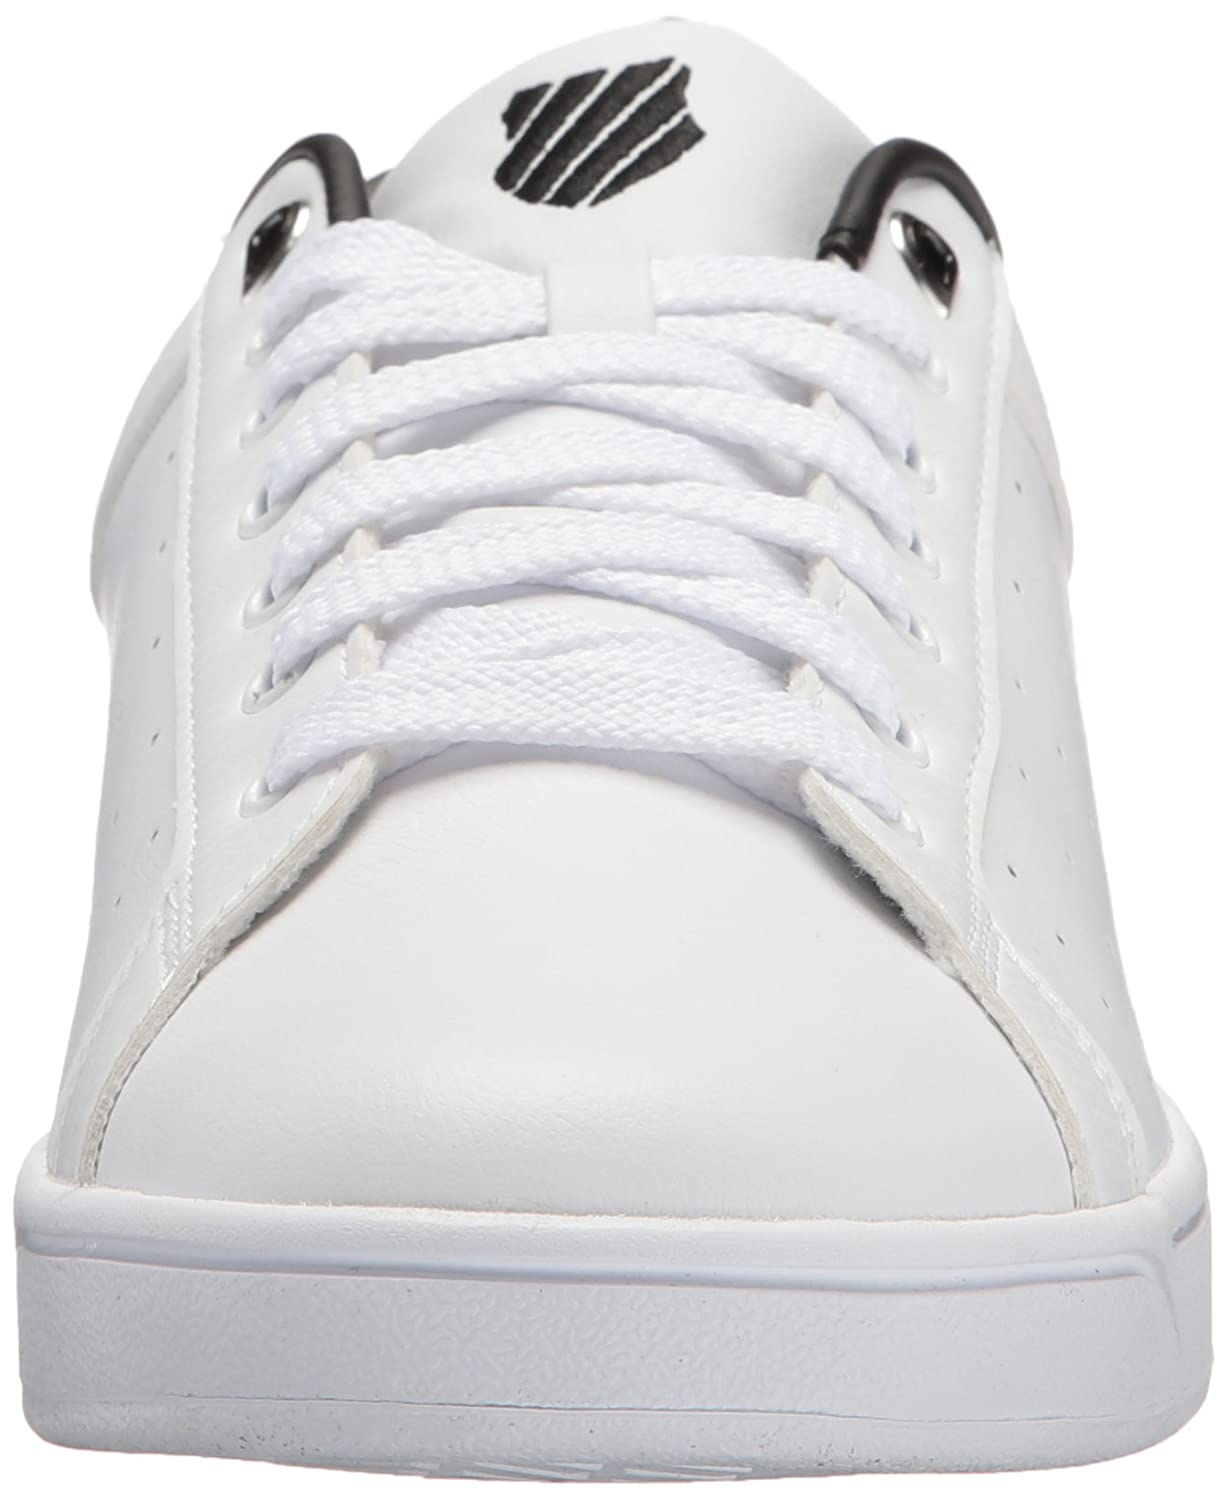 Homme Sneakers Basses Clean Swiss Court K Cmf wzTYTI